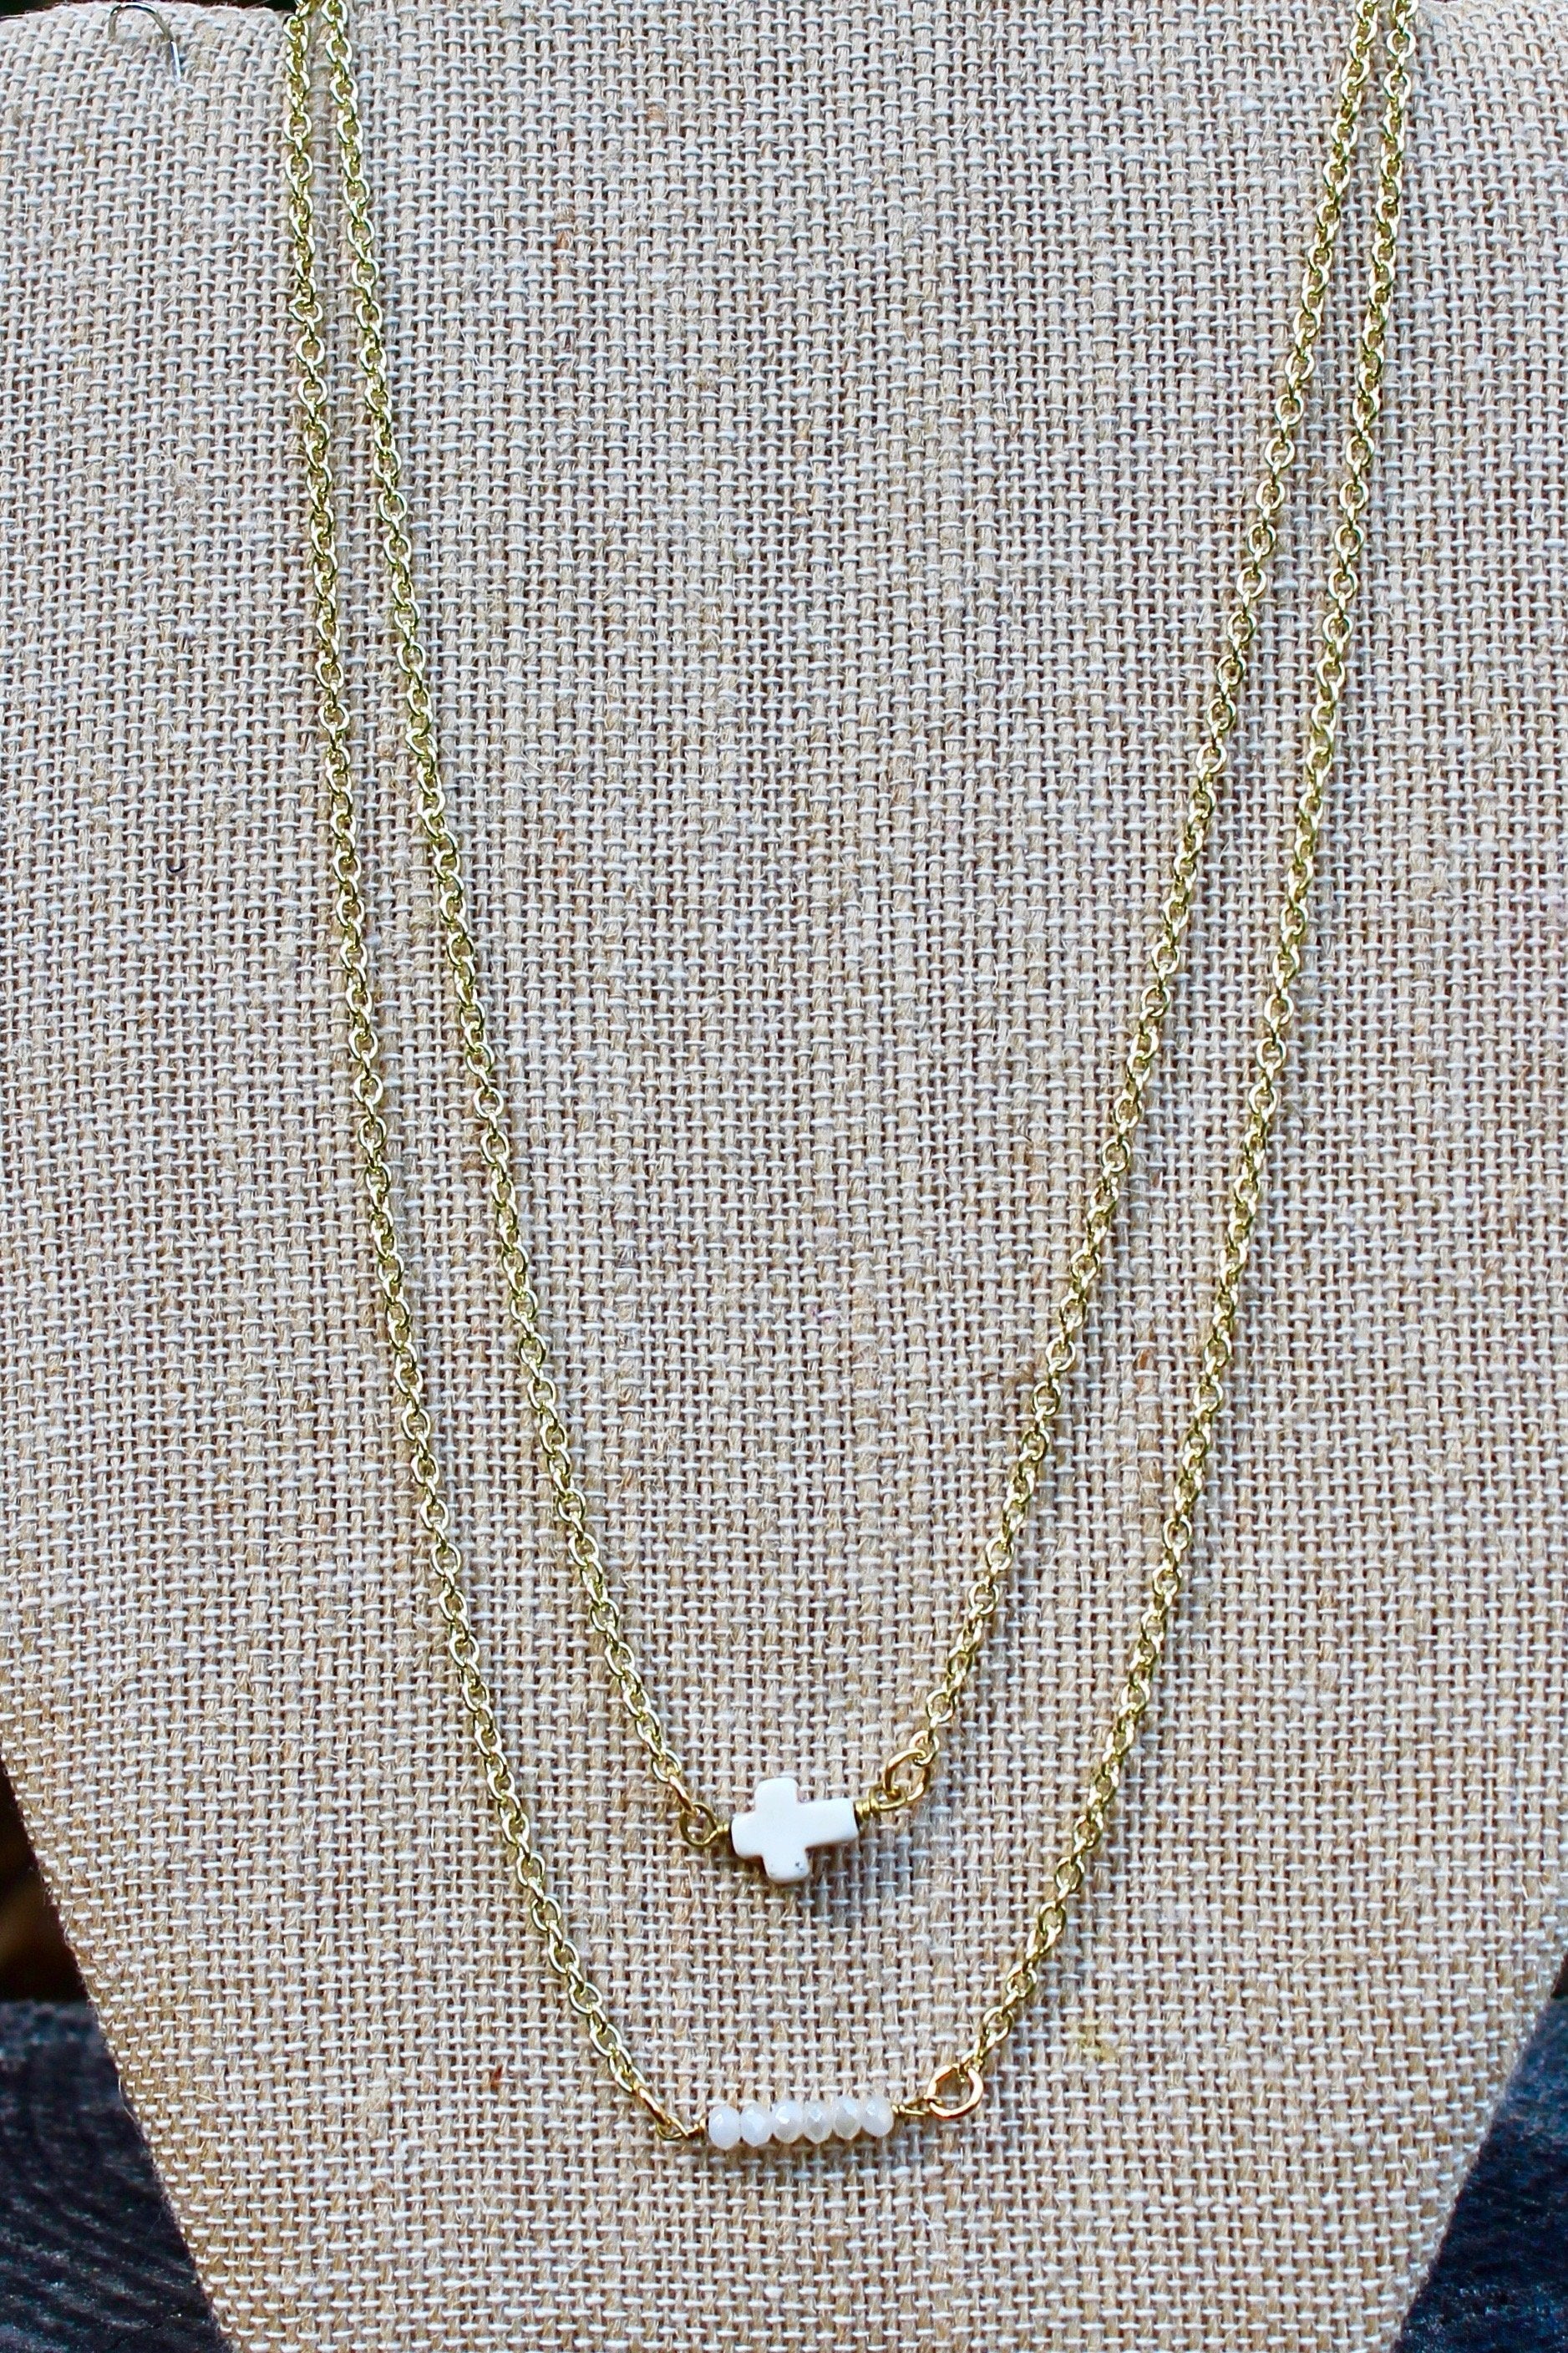 N126GW; White Stone Sideways Cross; Wired with Double Goldtone Chain; Approximately 16 inches; ; ; ; Majestees